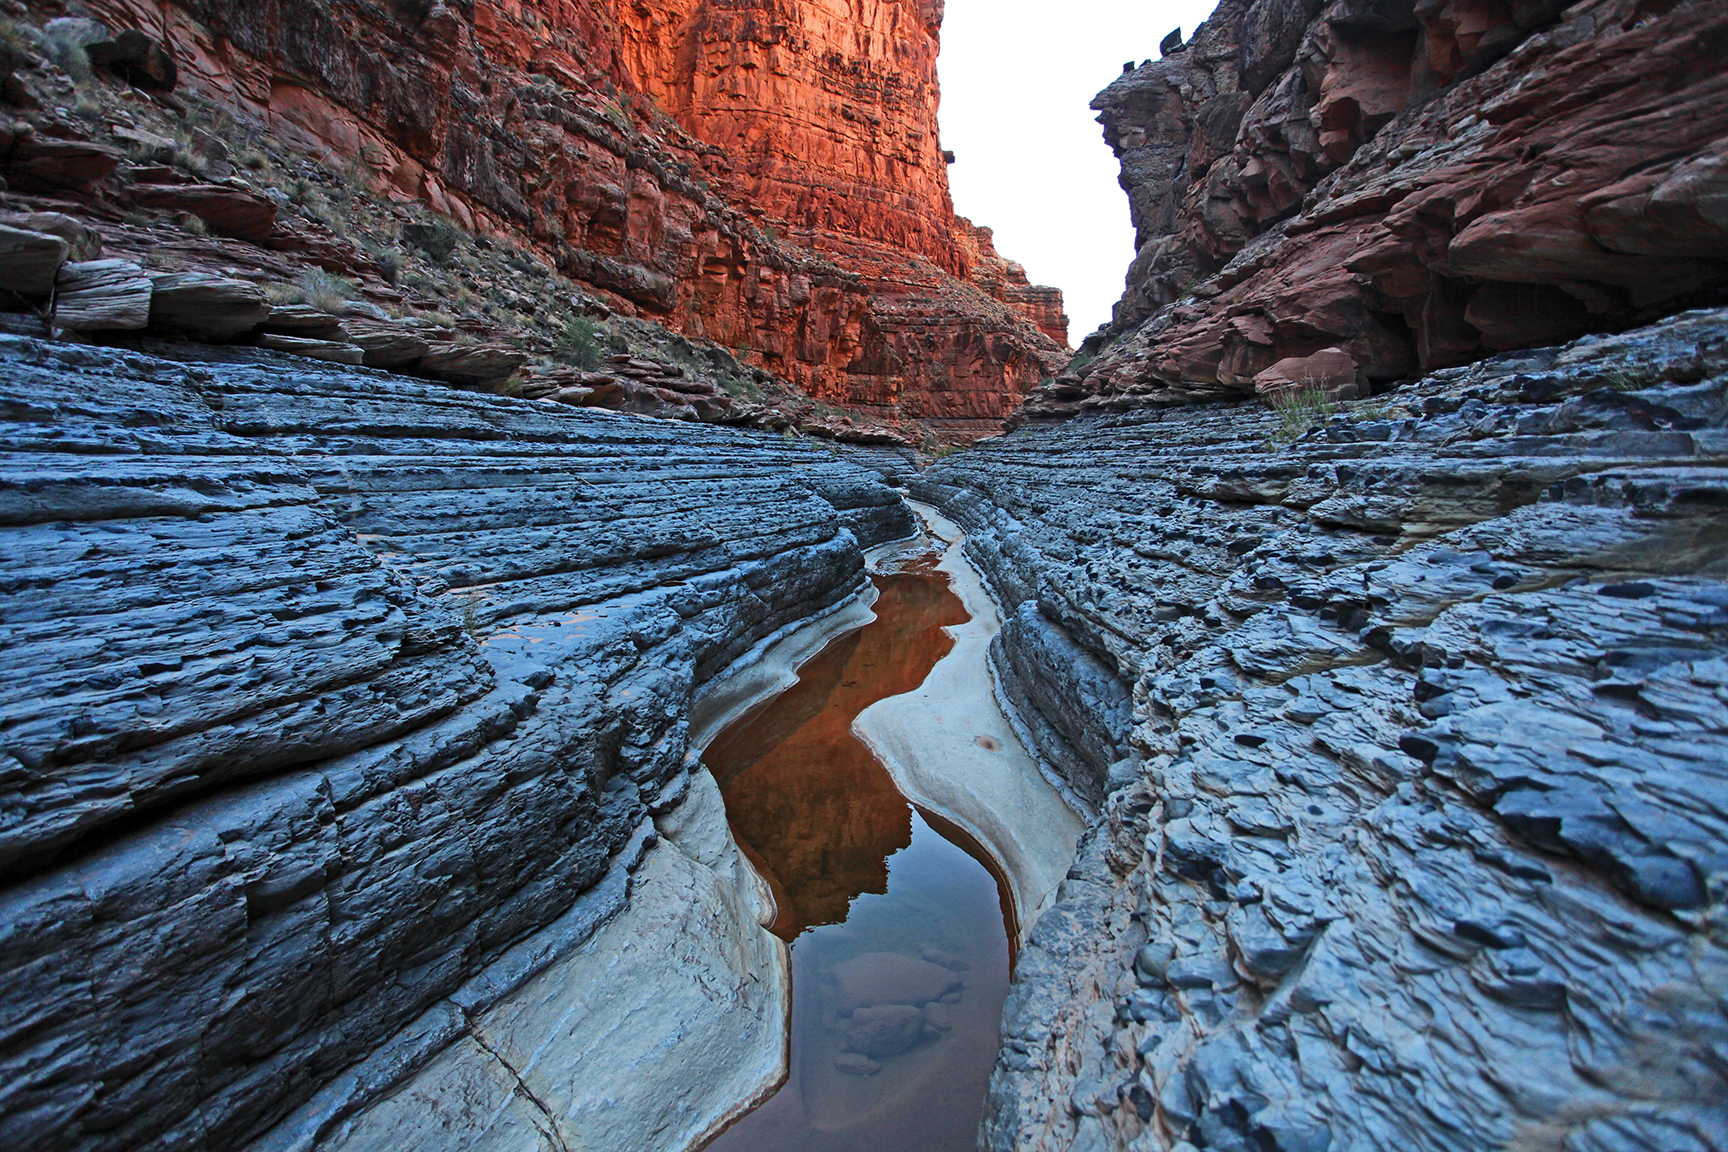 The spring-fed waters of Dark Canyon. Photo by Stephen Eginoire